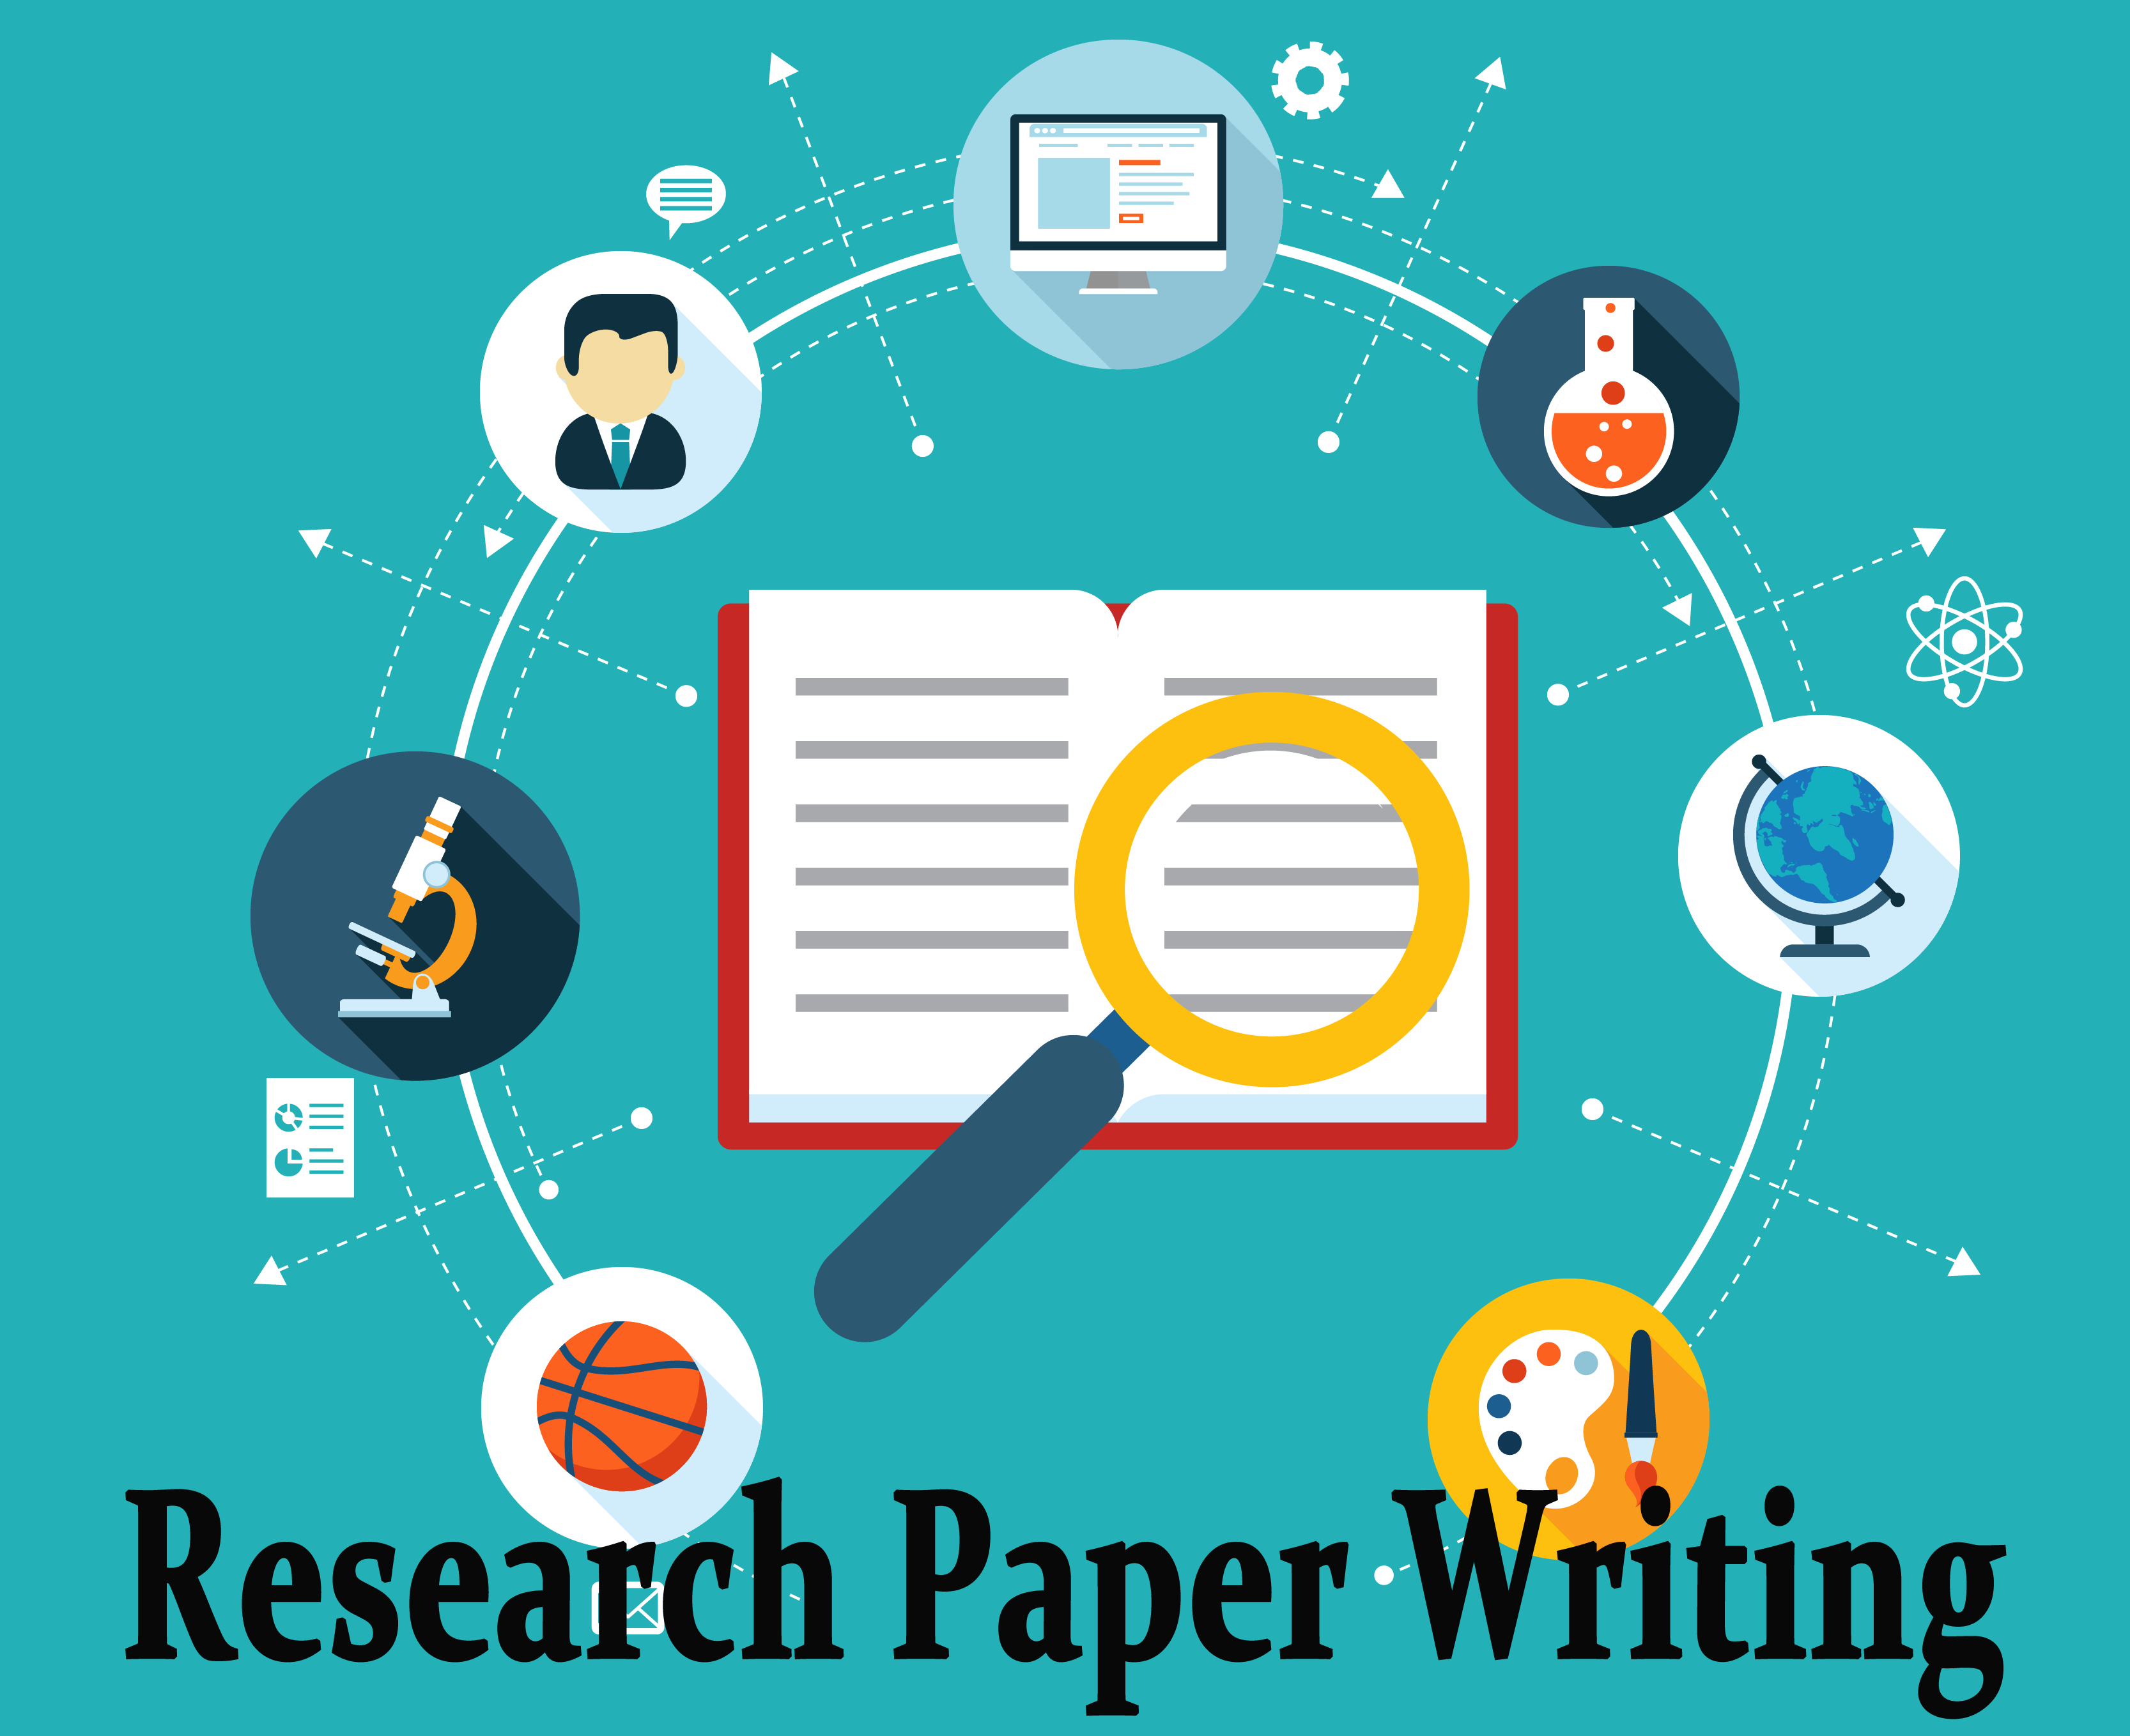 015 Research Paper 503 Effective Striking Writing Papers A Complete Guide Global Edition Pdf Lester 16th Free Full